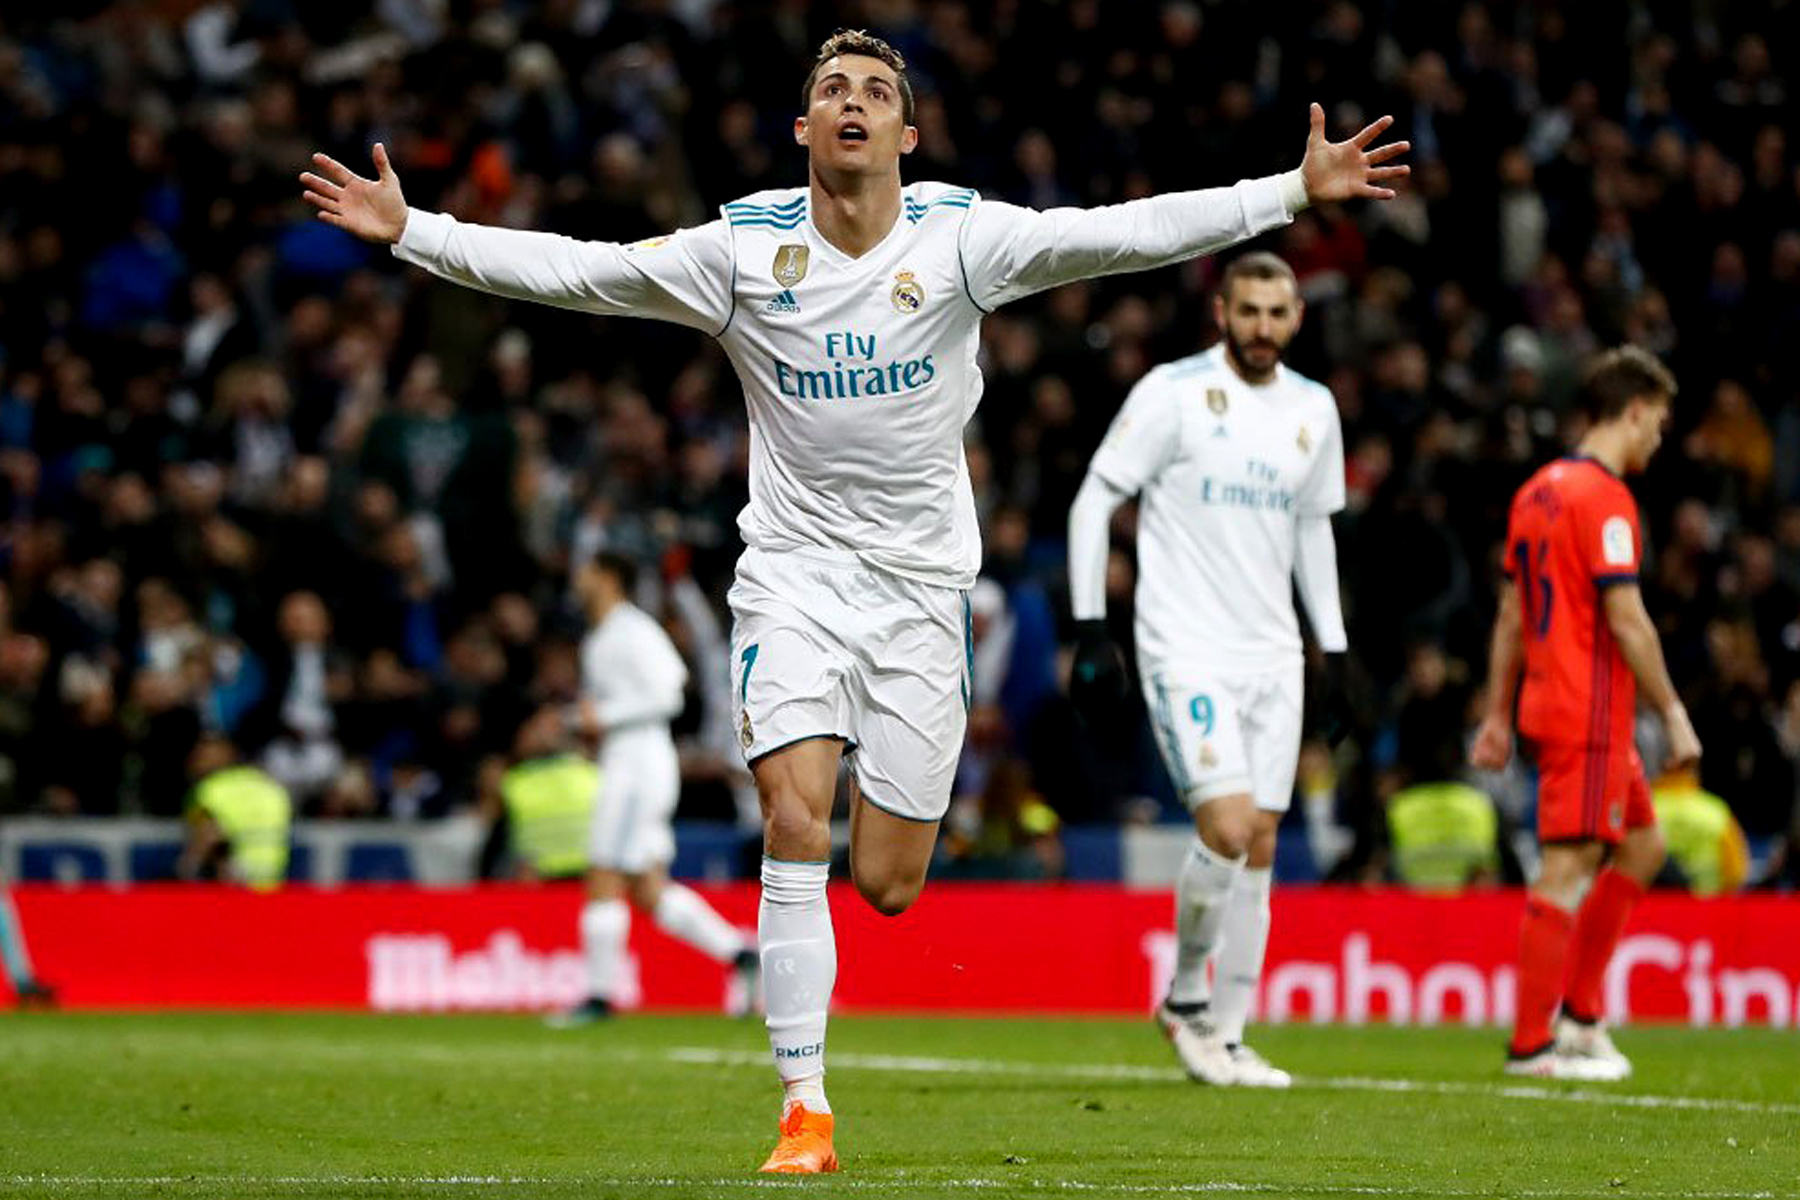 Real Madrid golea 5-2 a la Real Sociedad